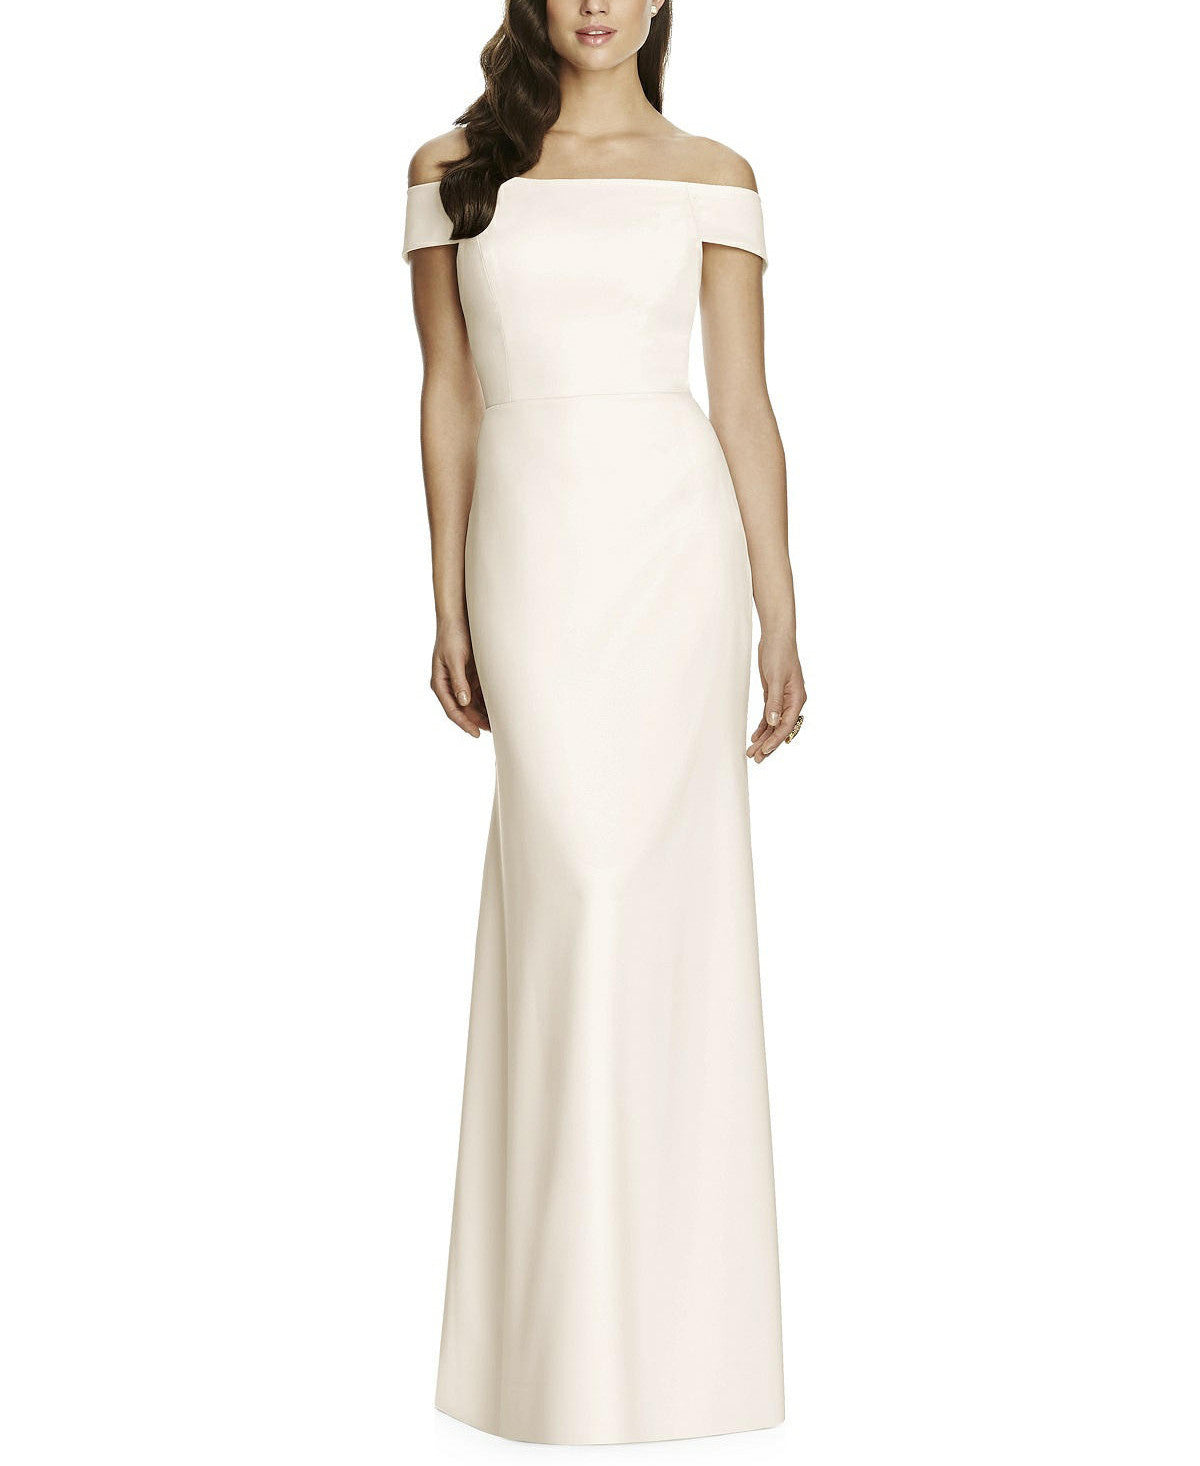 Dessy collection style 2987 quickship bridesmaid dress brideside dessy collection style 2987 quickship ombrellifo Gallery